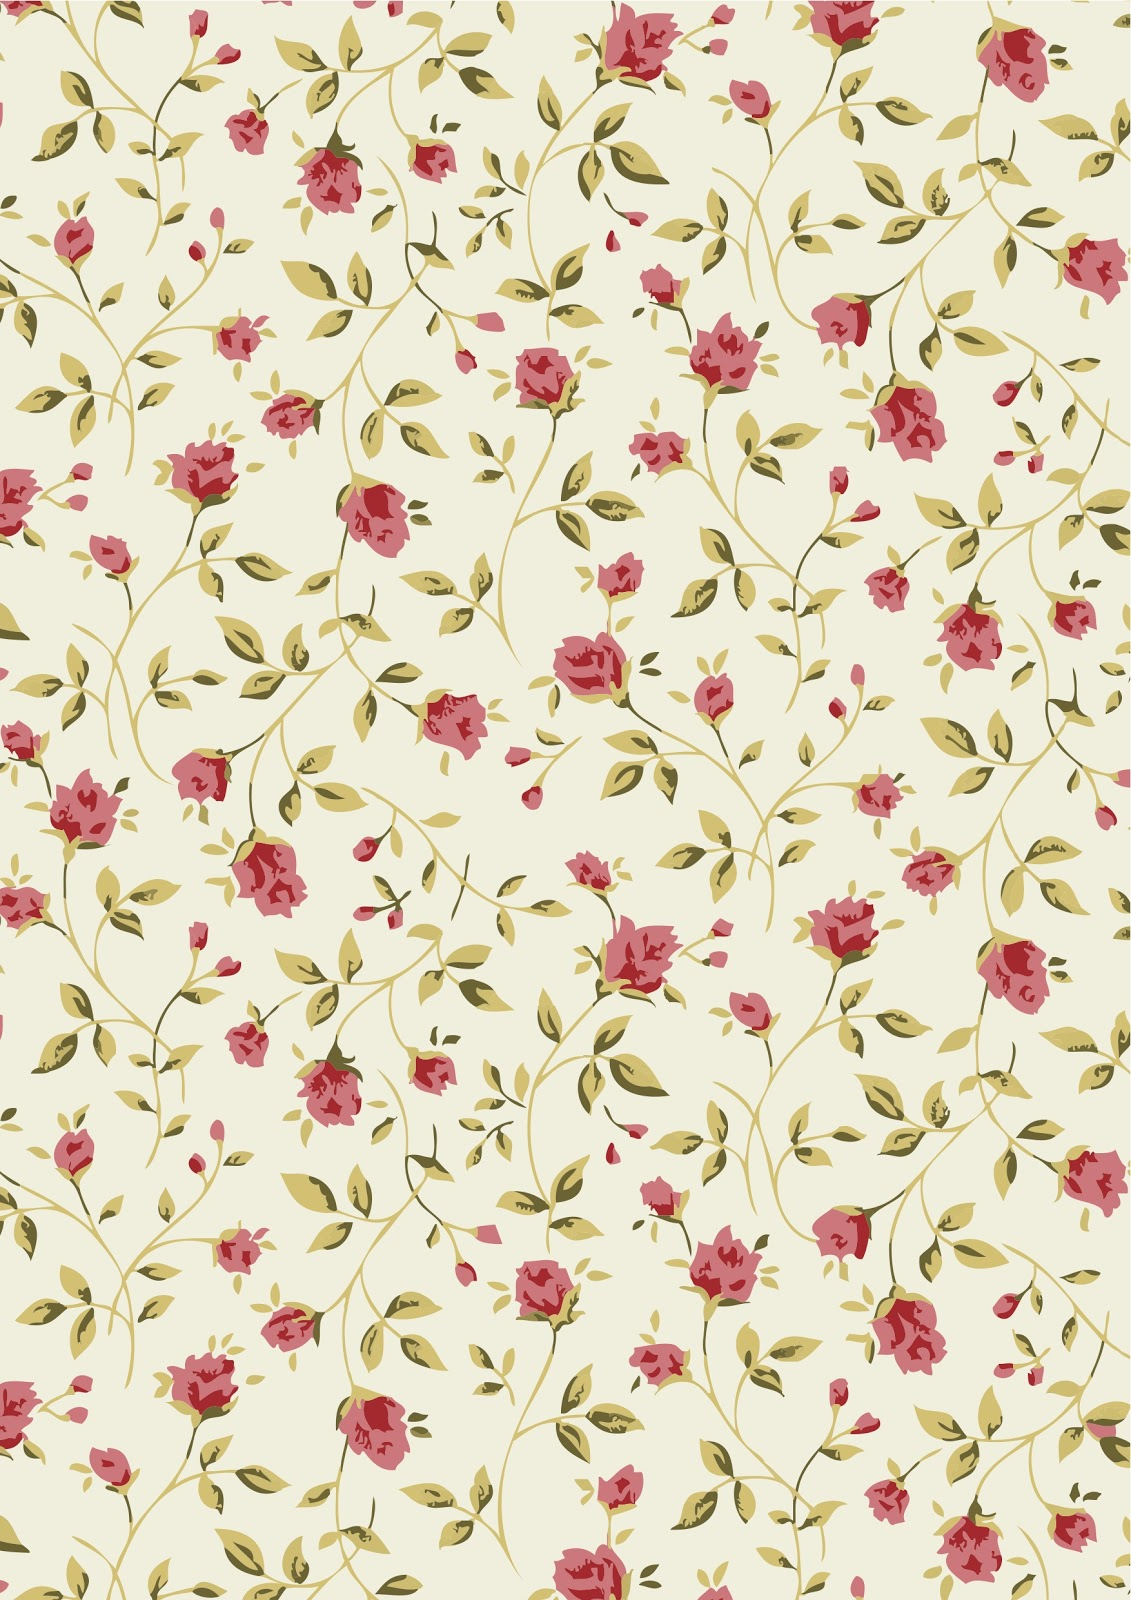 about floral vintage patterns - photo #20